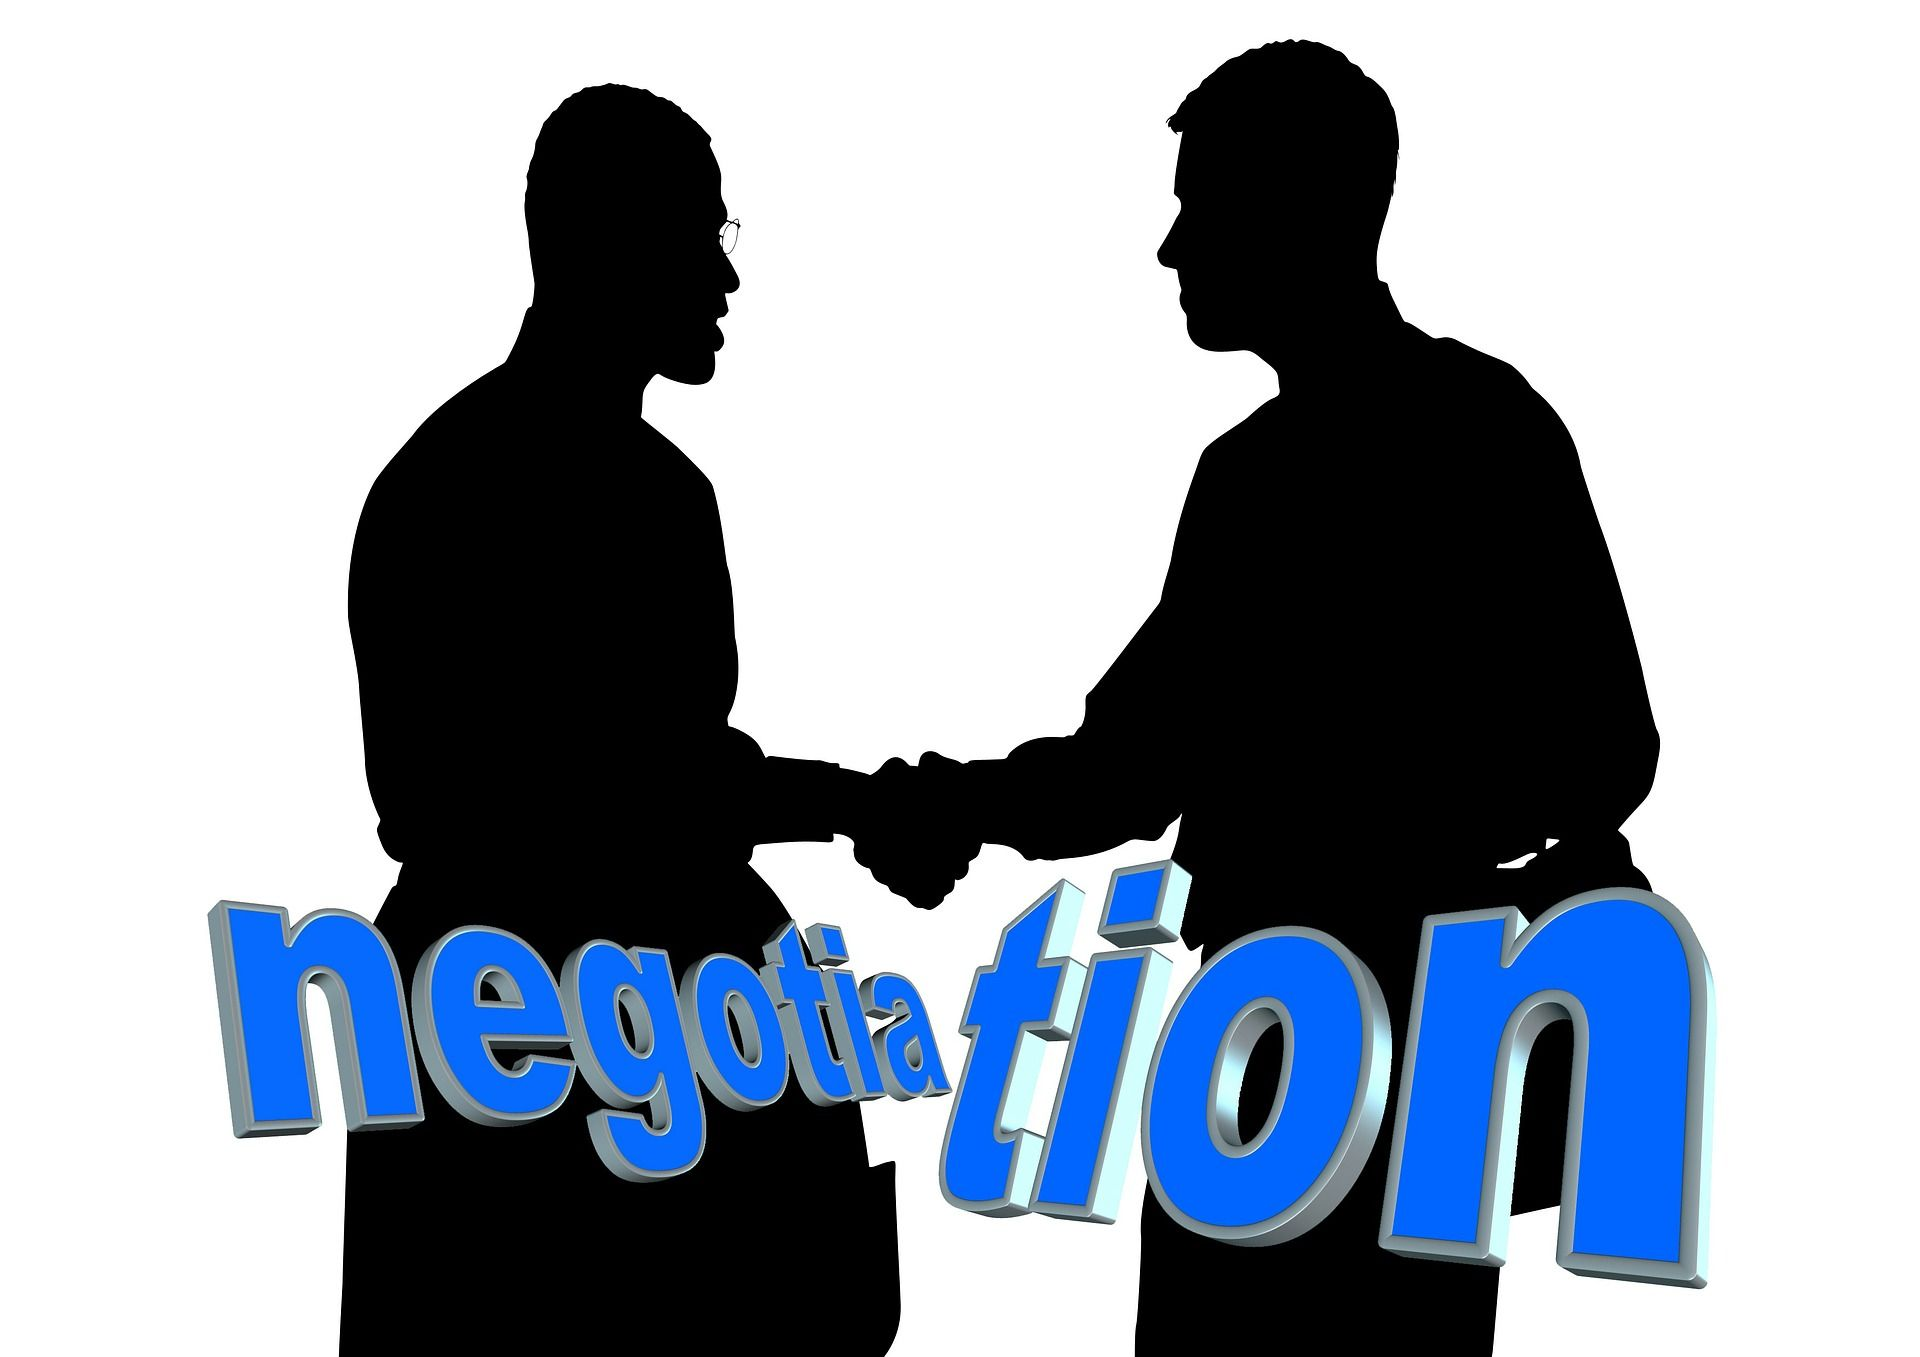 real life negotiation Top ten business negotiation articles the following articles present negotiation examples in real life and offer strategies for engaging in integrative negotiations strategies aimed at creating win-win scenarios for each party at the negotiation table 1.